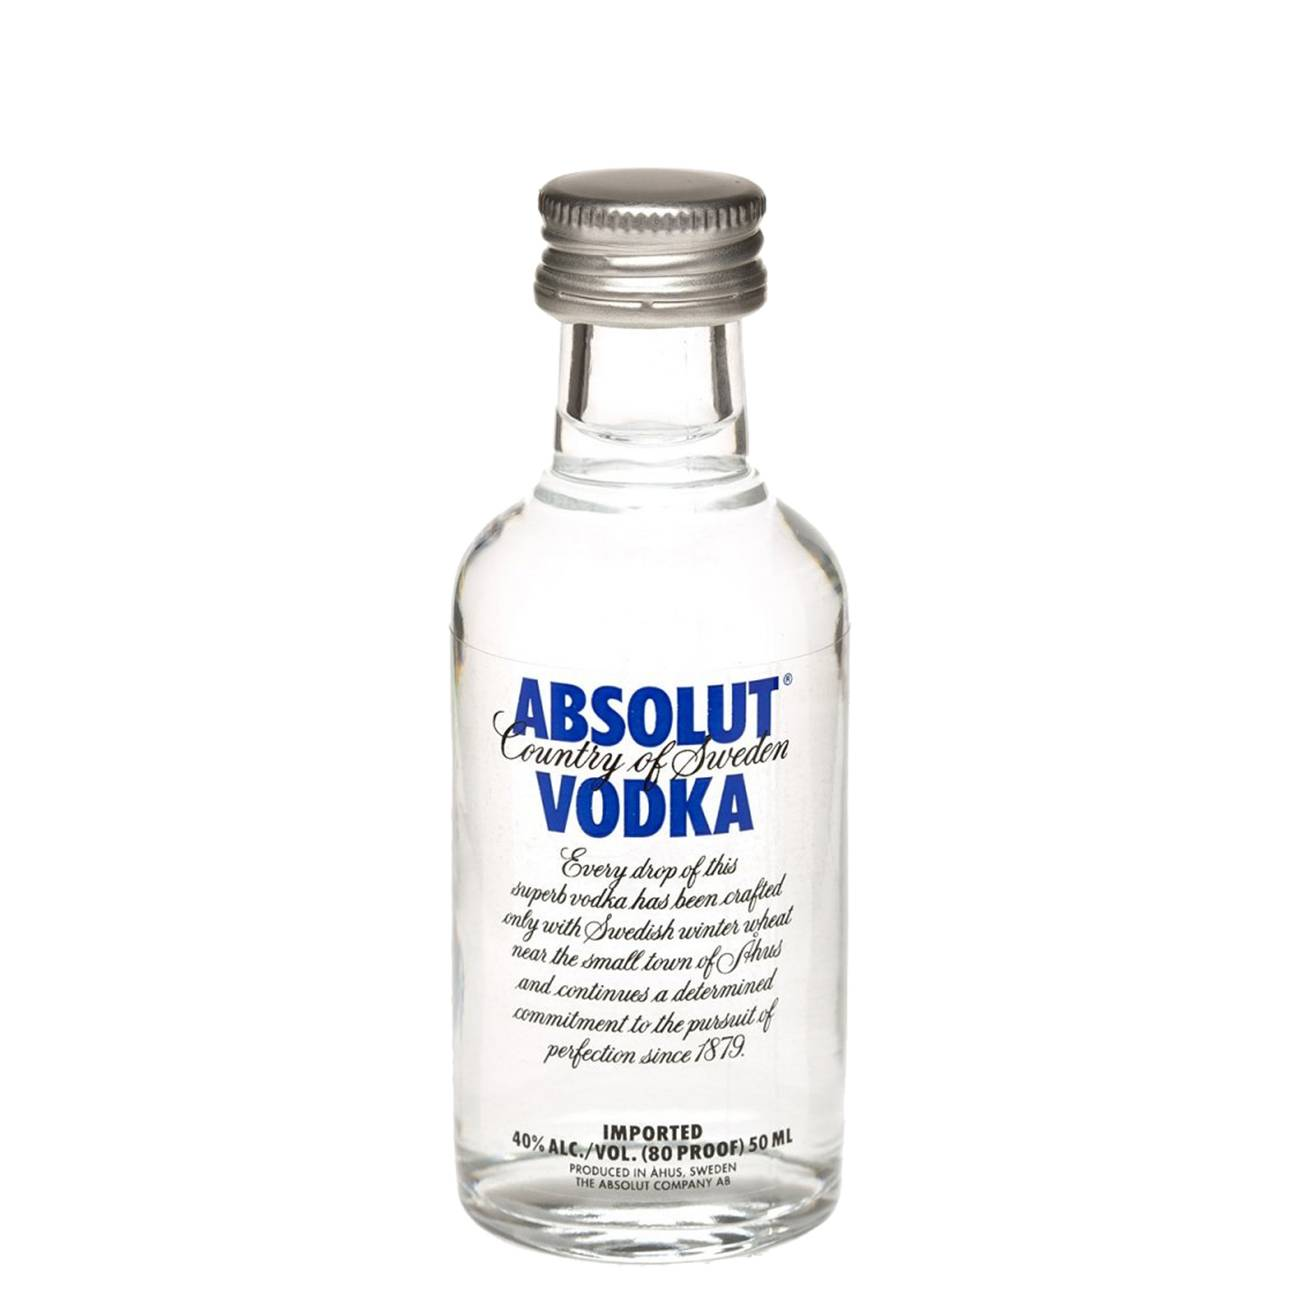 Vodka, BLUE 50 ML, Absolut